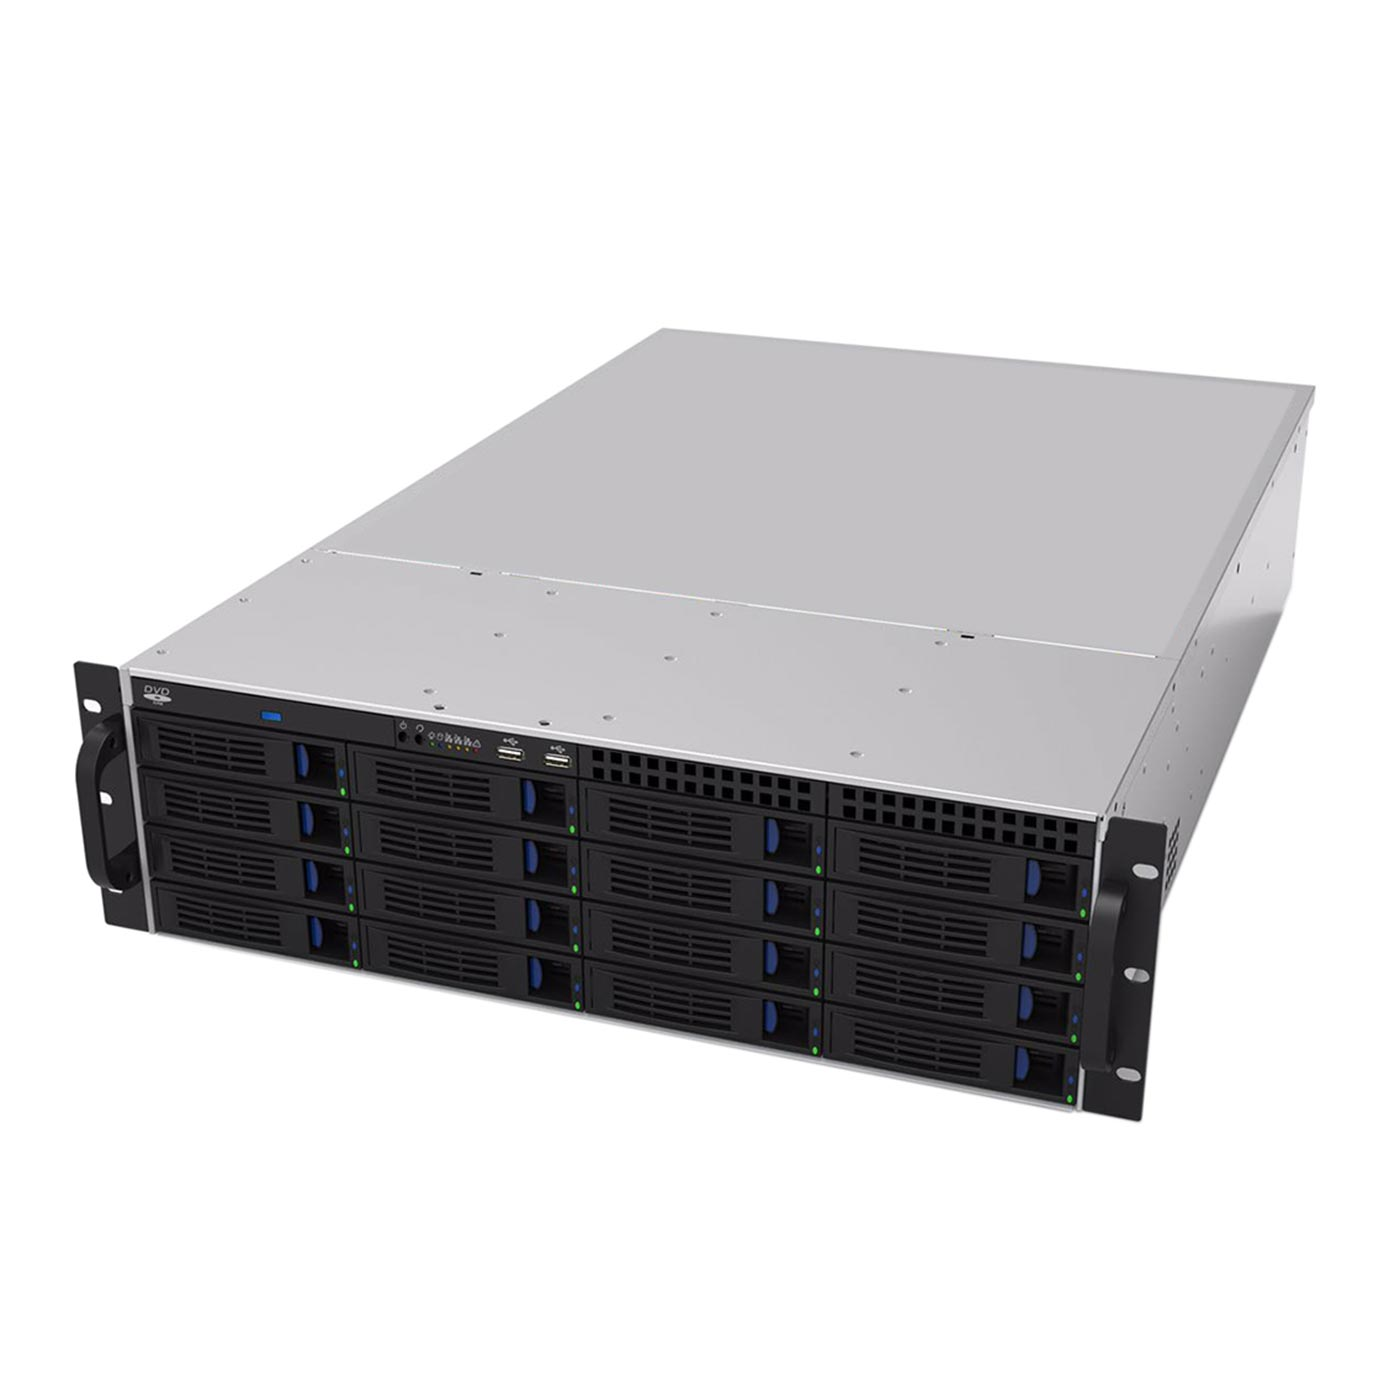 Серверный корпус 3U NR-R316 БП 2x1600Вт 16xHot Swap SAS/SATA (EATX 12x13, Slim CD, 650mm) черный